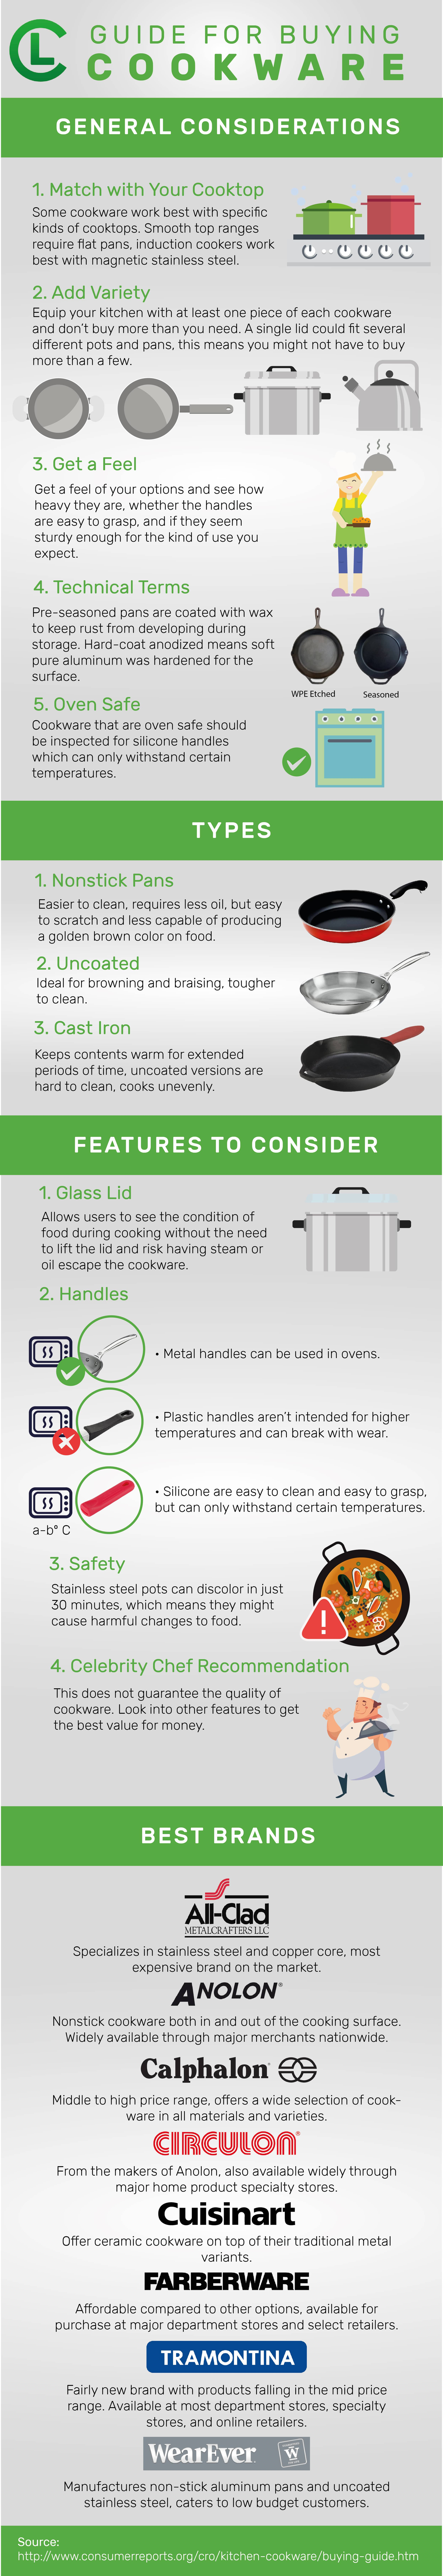 Guide For Buying Cookware Infographic